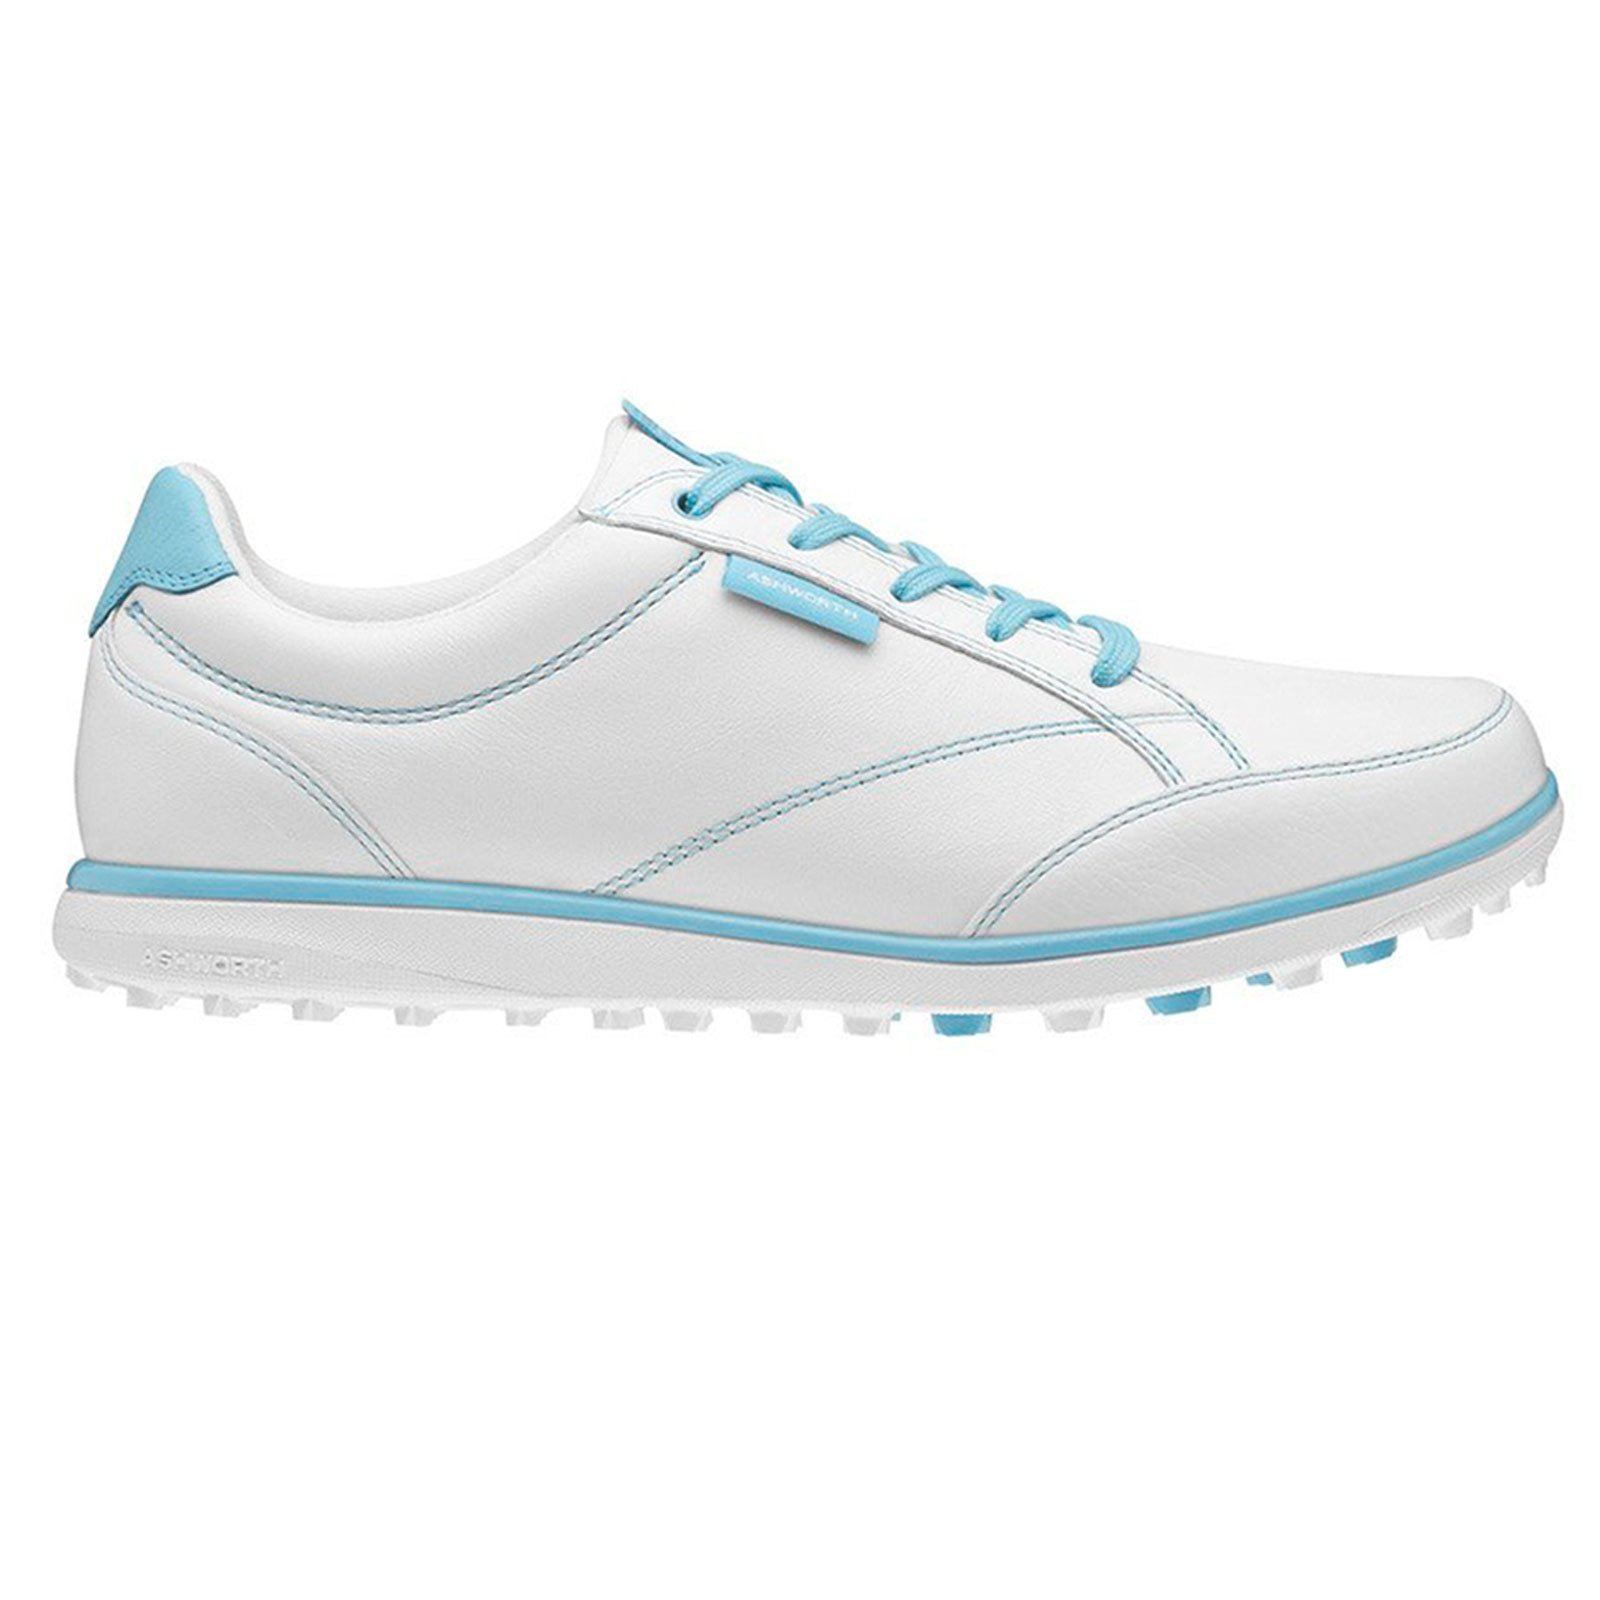 Ashworth Women's Leather and Mesh Golf Shoes 7.5 UK White/Light Aqua/Blue